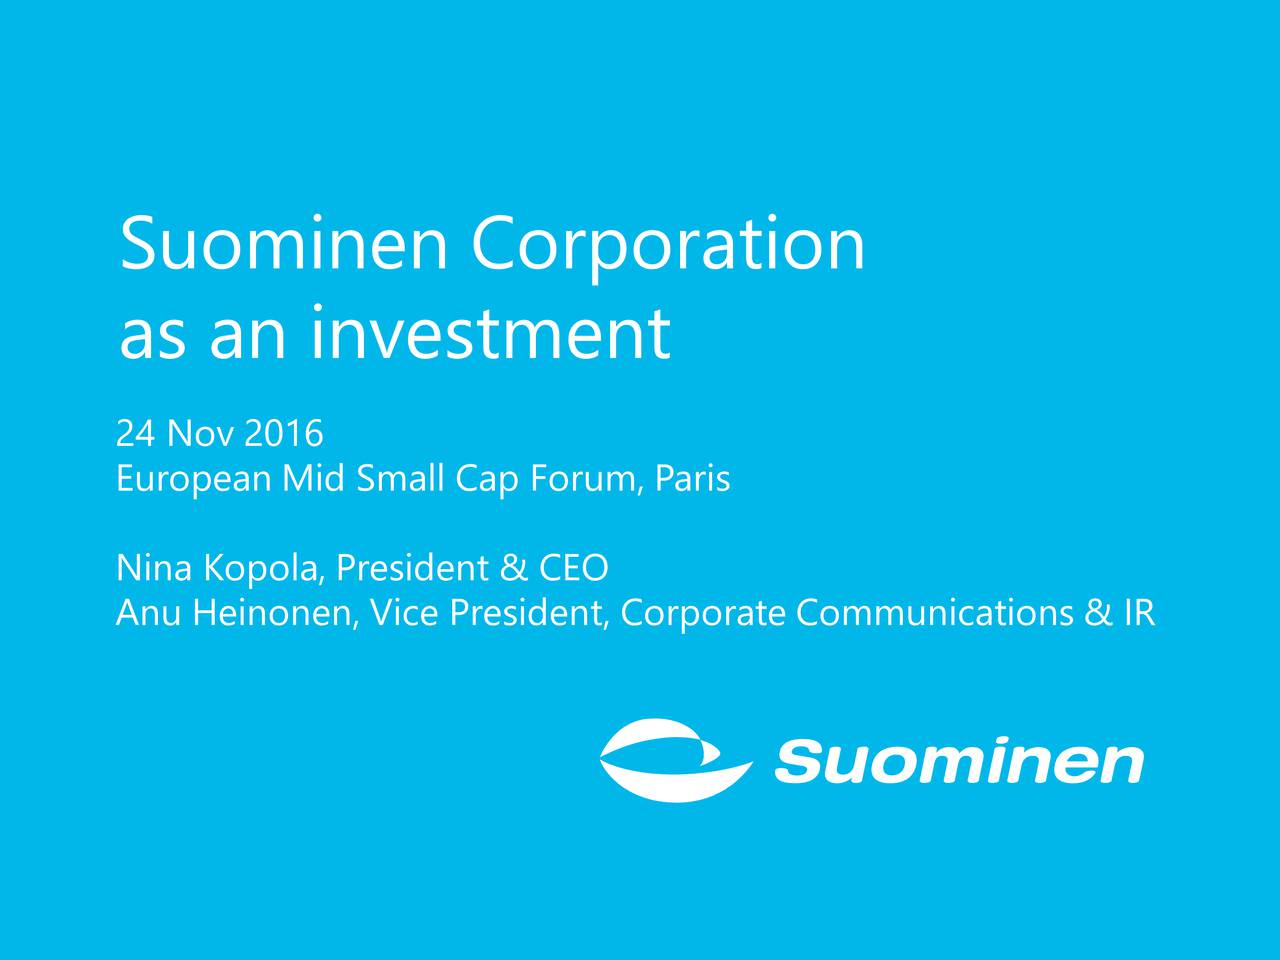 Suominen (SMNCF) Presents at European Mid Small Cap Forum